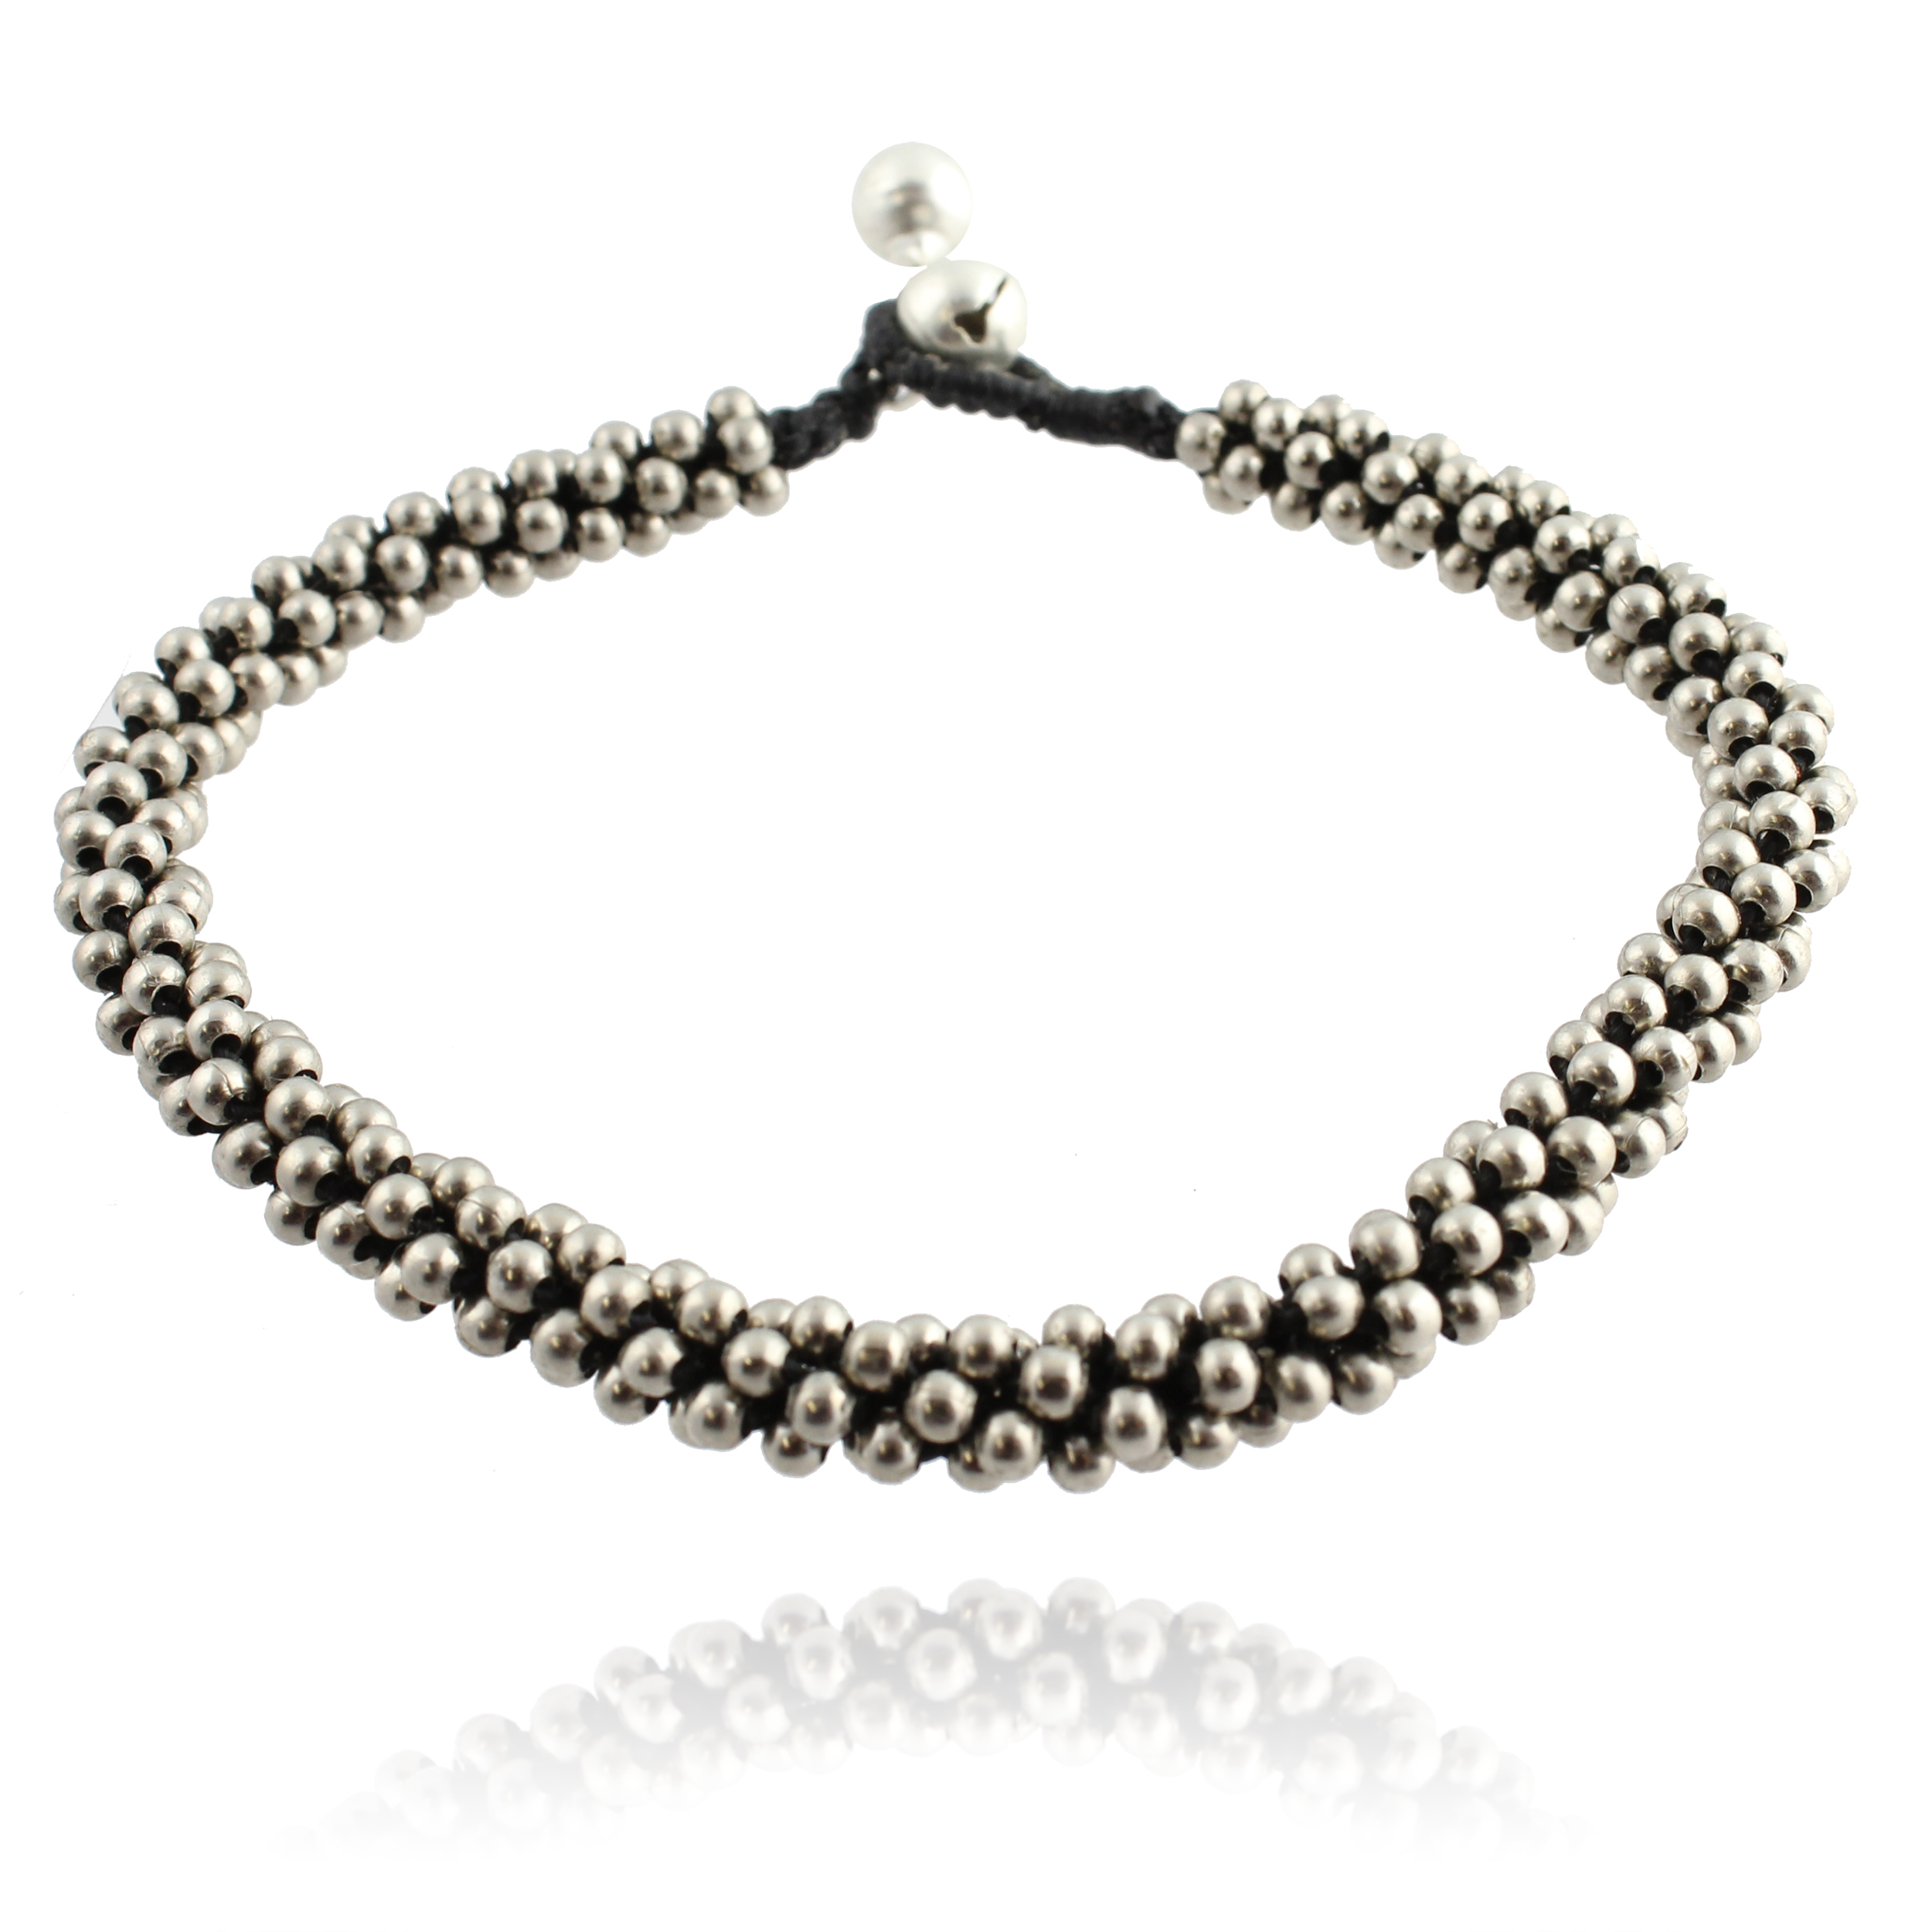 Adjustable Anklet with Beads and Bells, 10 to 10.5 inches, Handmade Fair Trade